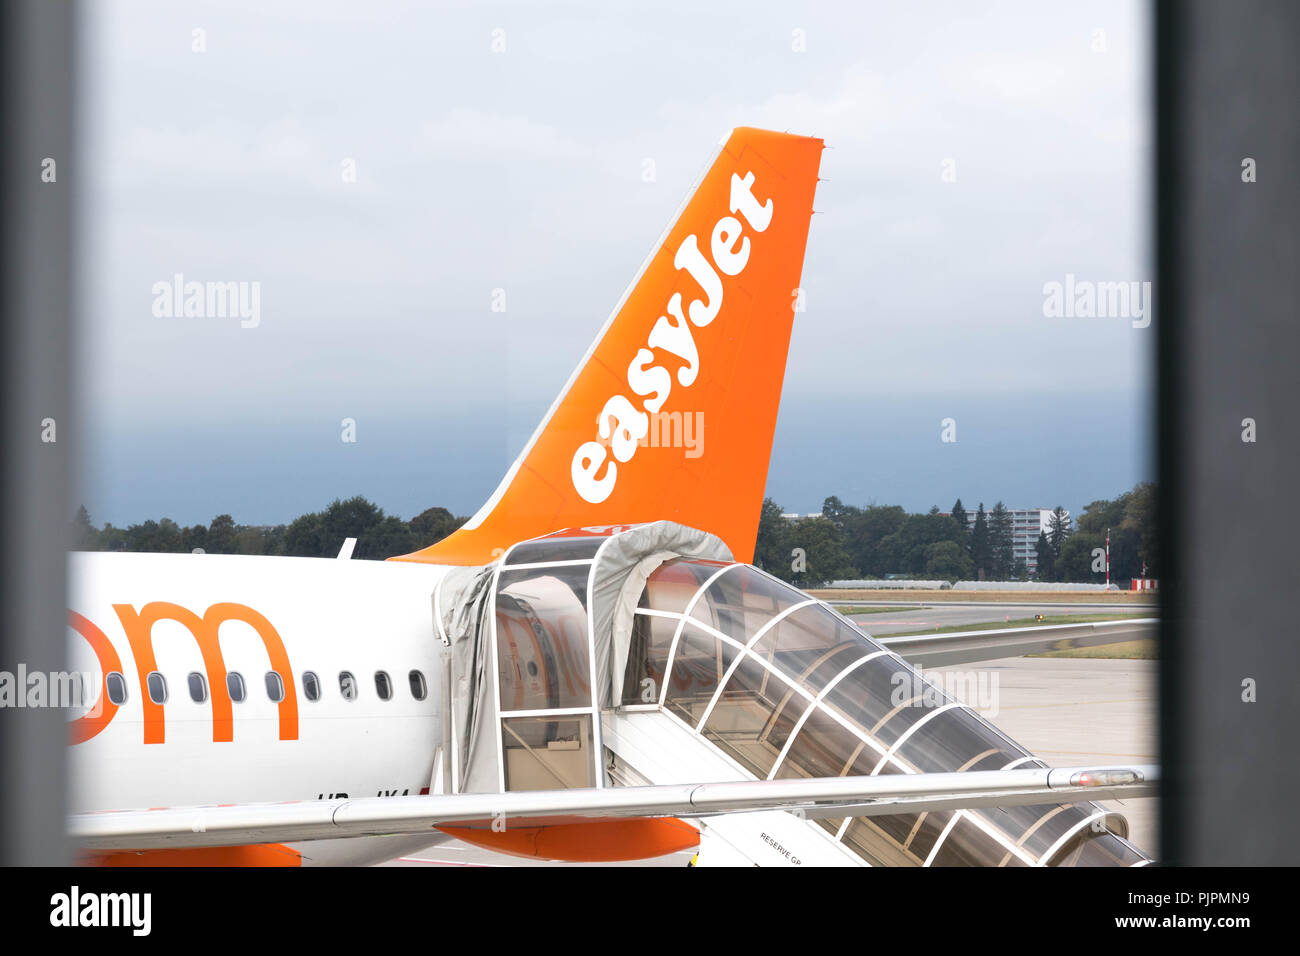 Plane of easyjet being boarding with staircase boarding - Stock Image